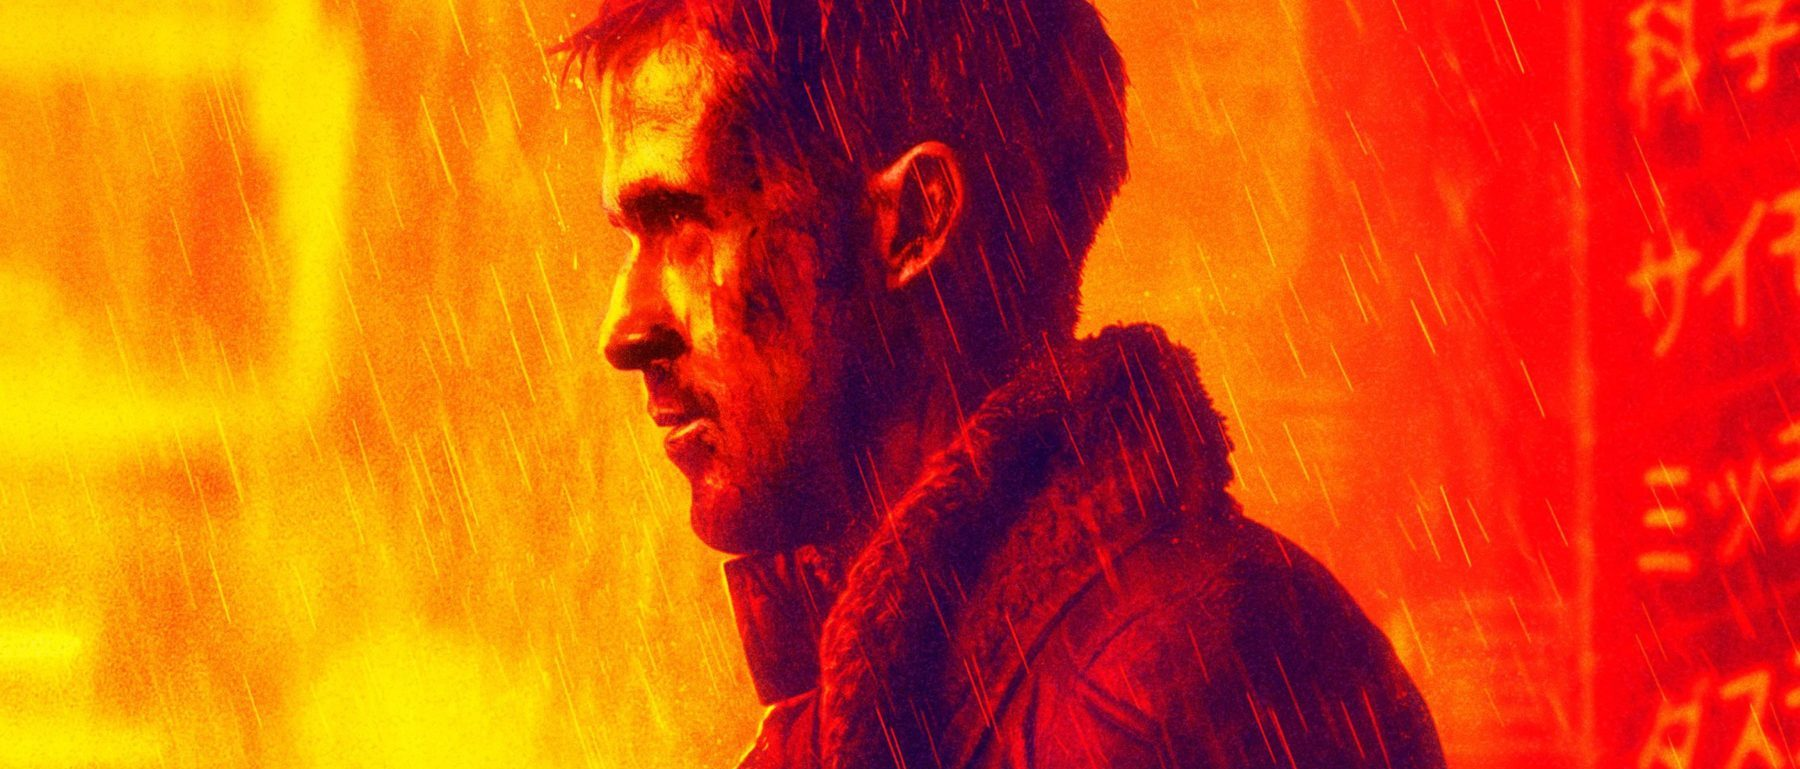 Blade Runner 2049 Ridley Scott